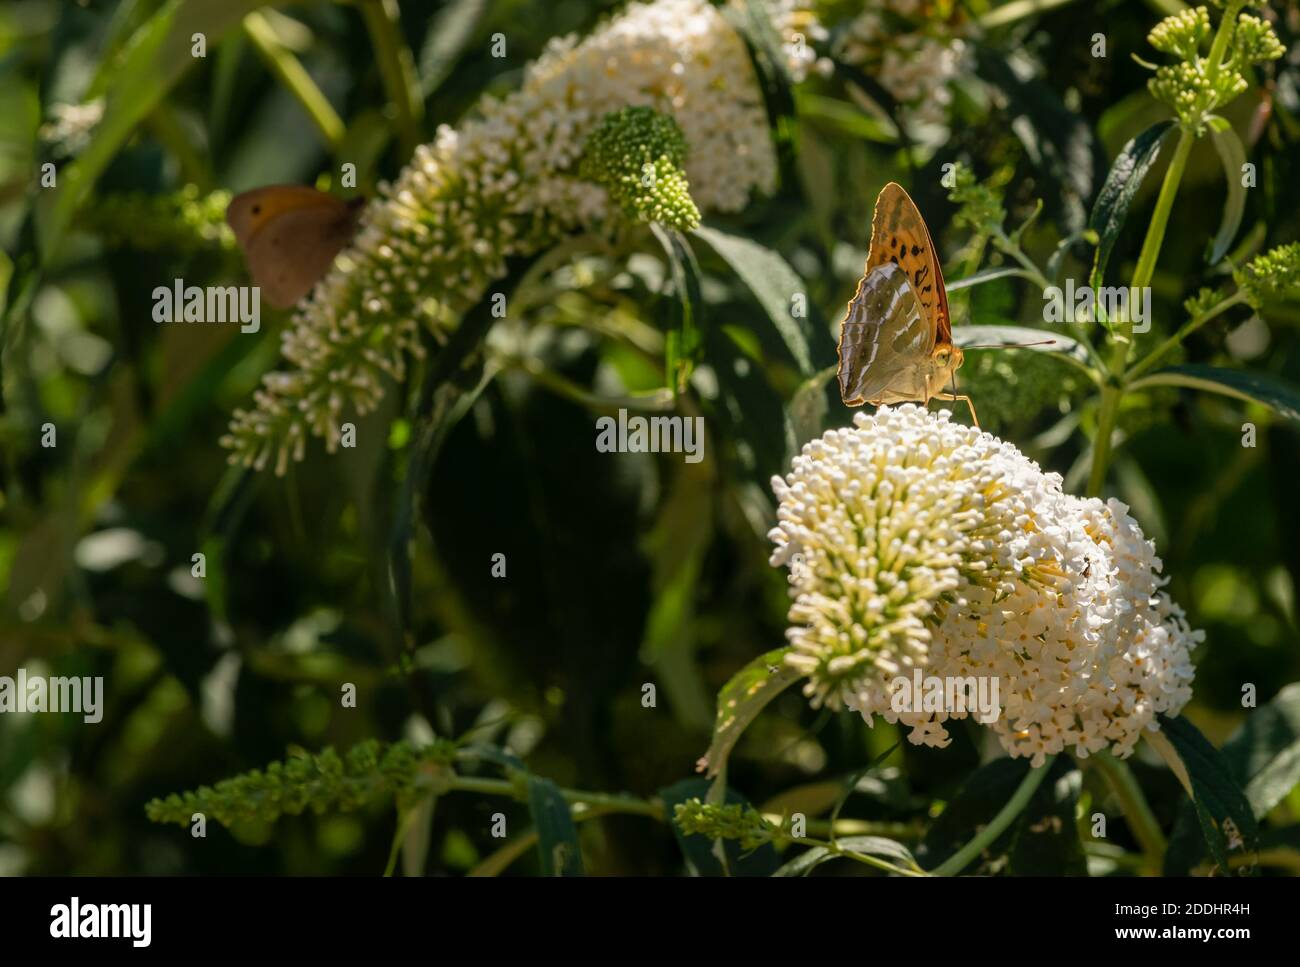 outdoor summer macro portrait of a single Quail Wheat Fritillary butterfly sitting on a white lilac blossom, sunny day,blurred natural background Stock Photo